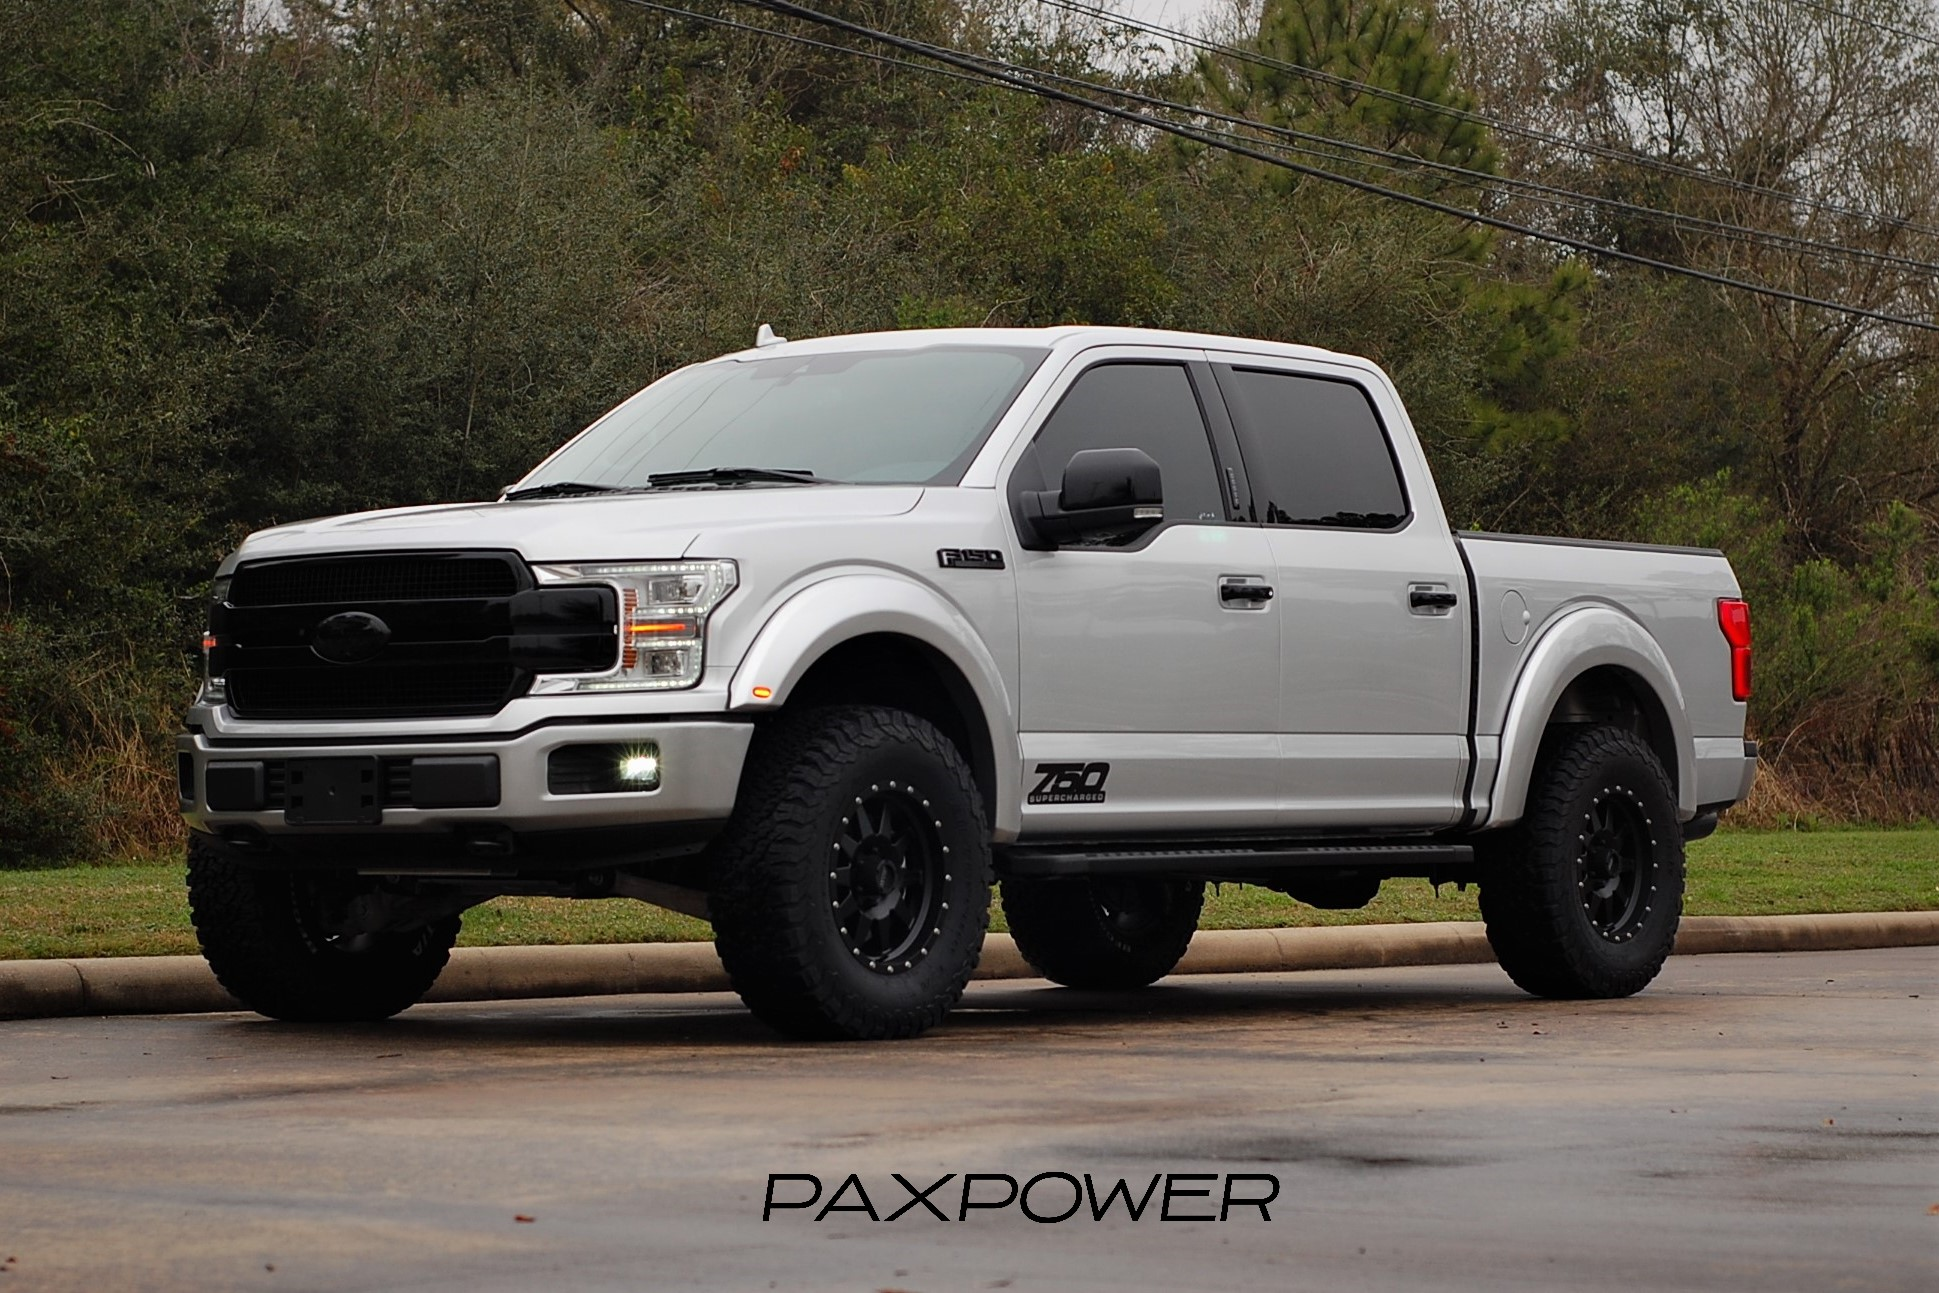 V8 Raptor by PaxPower - 2019-2020 V8 and Diesel Raptor Conversions